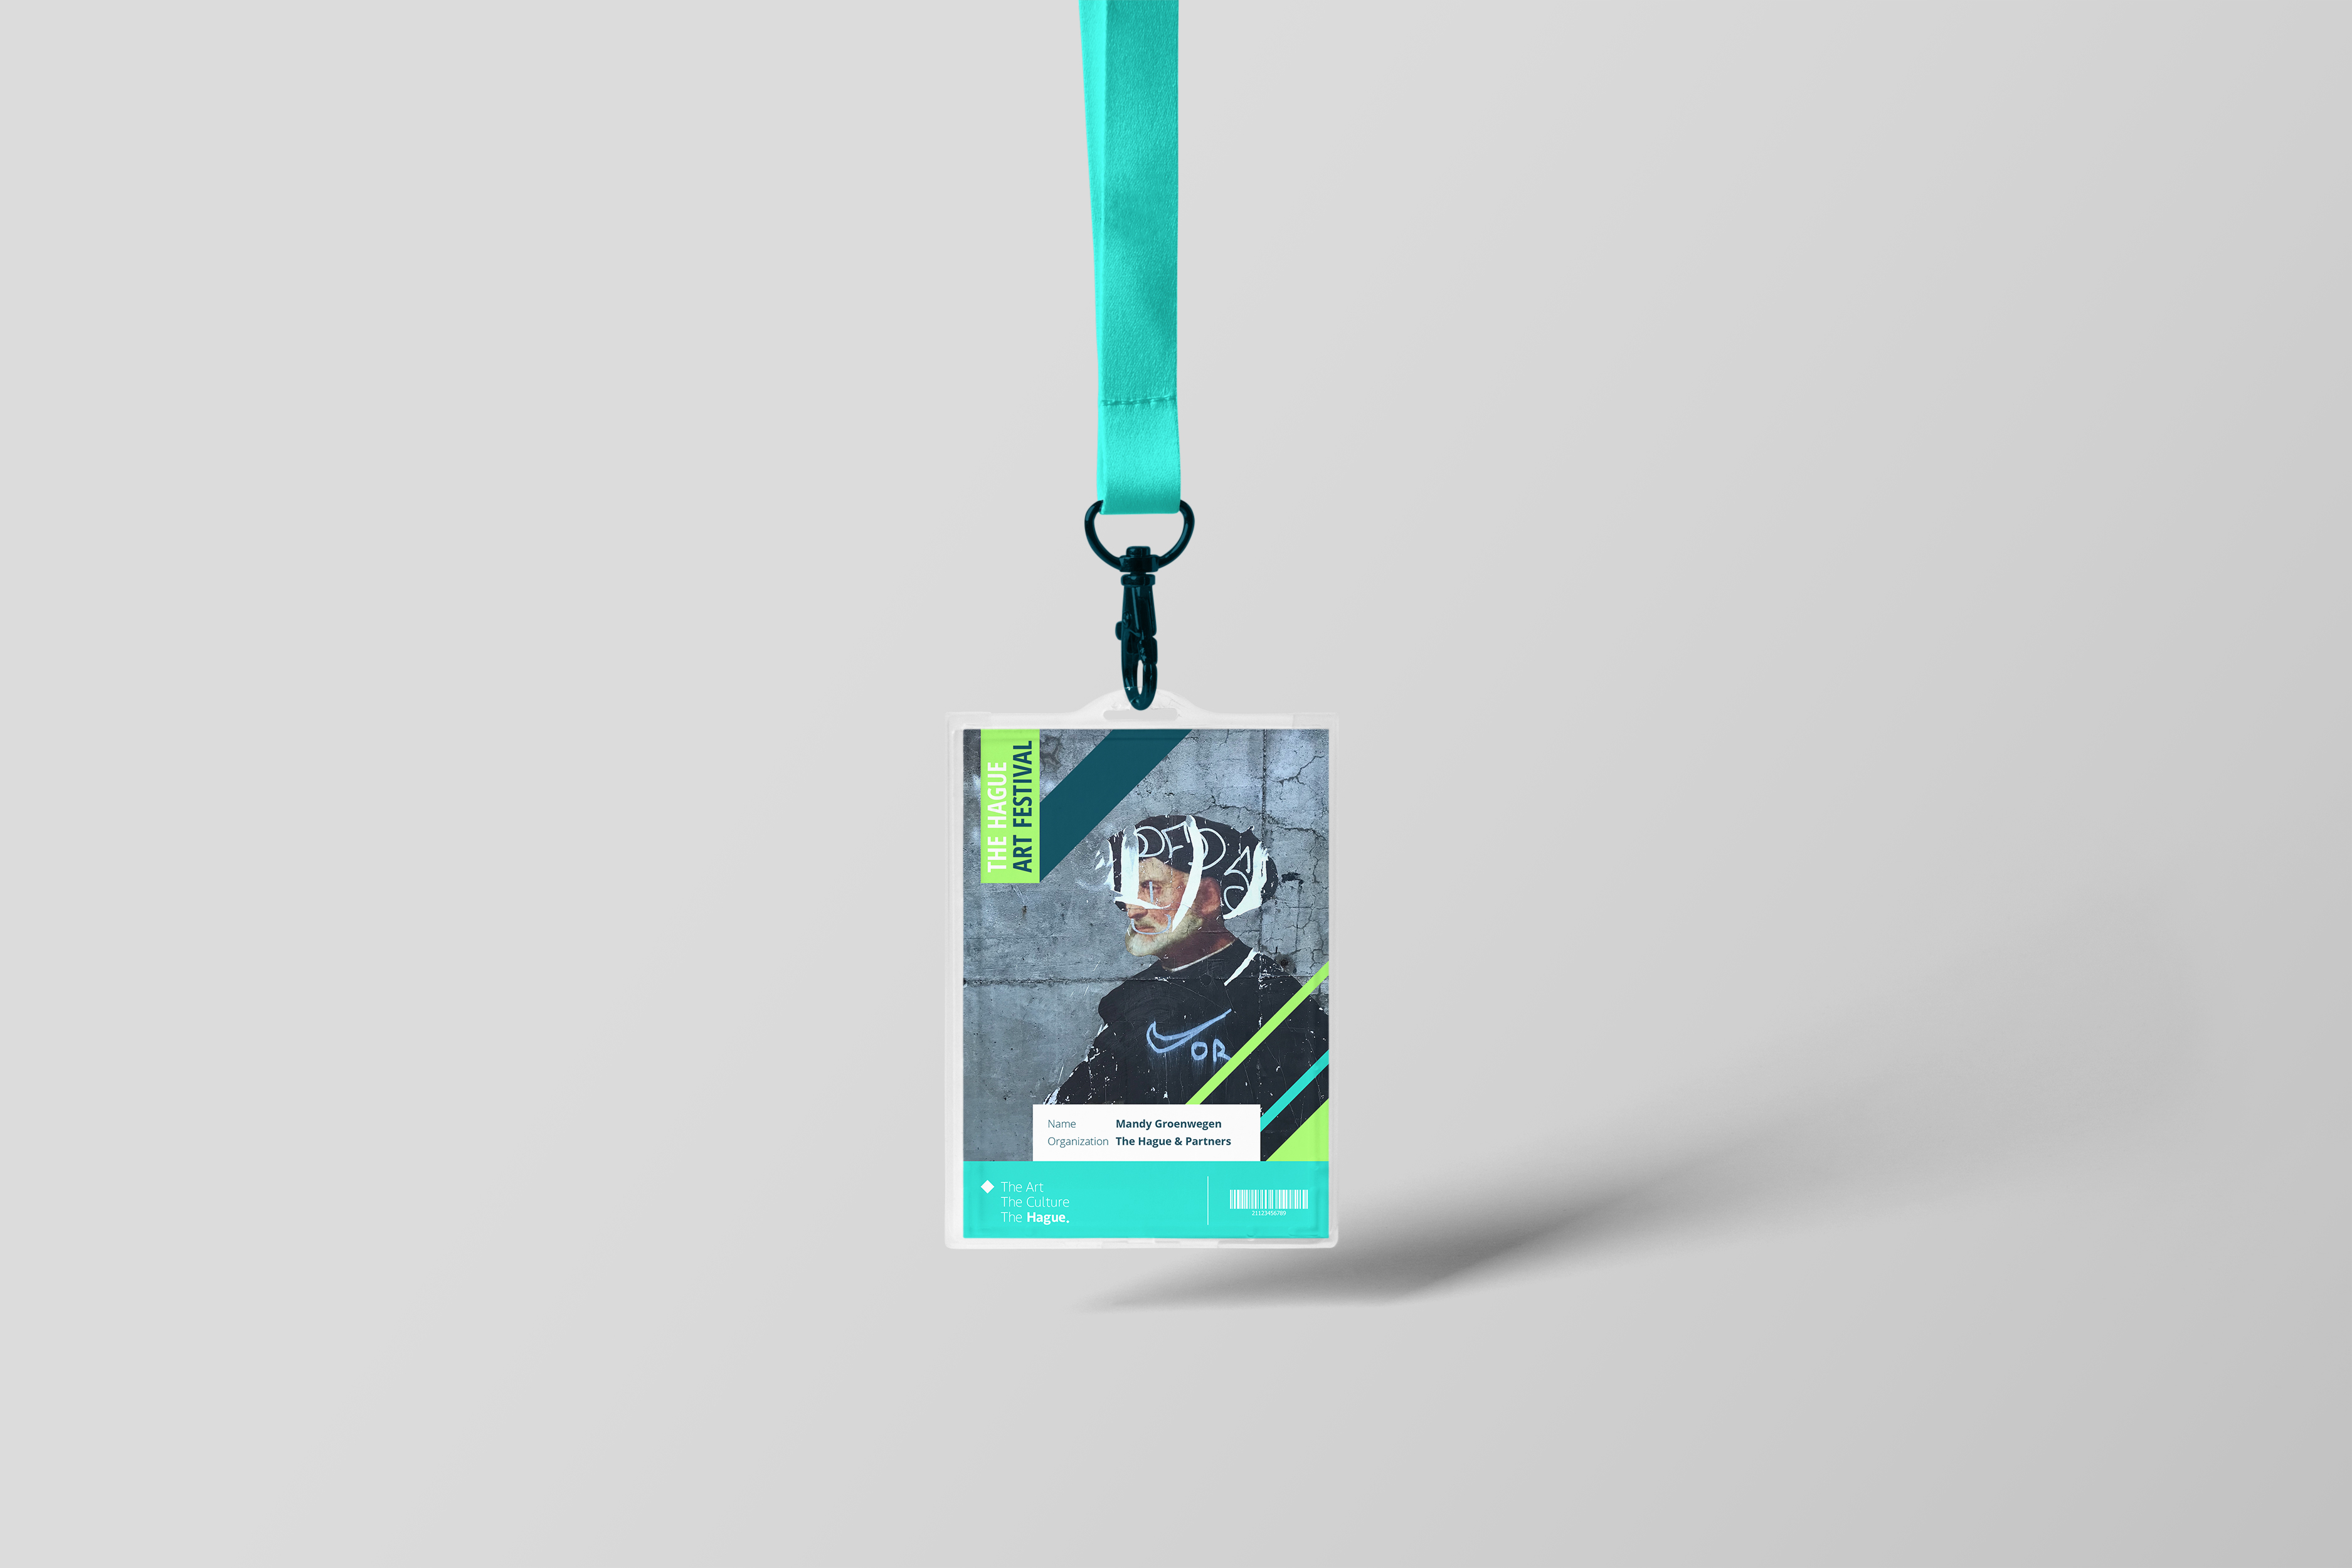 th_art_fest_badge